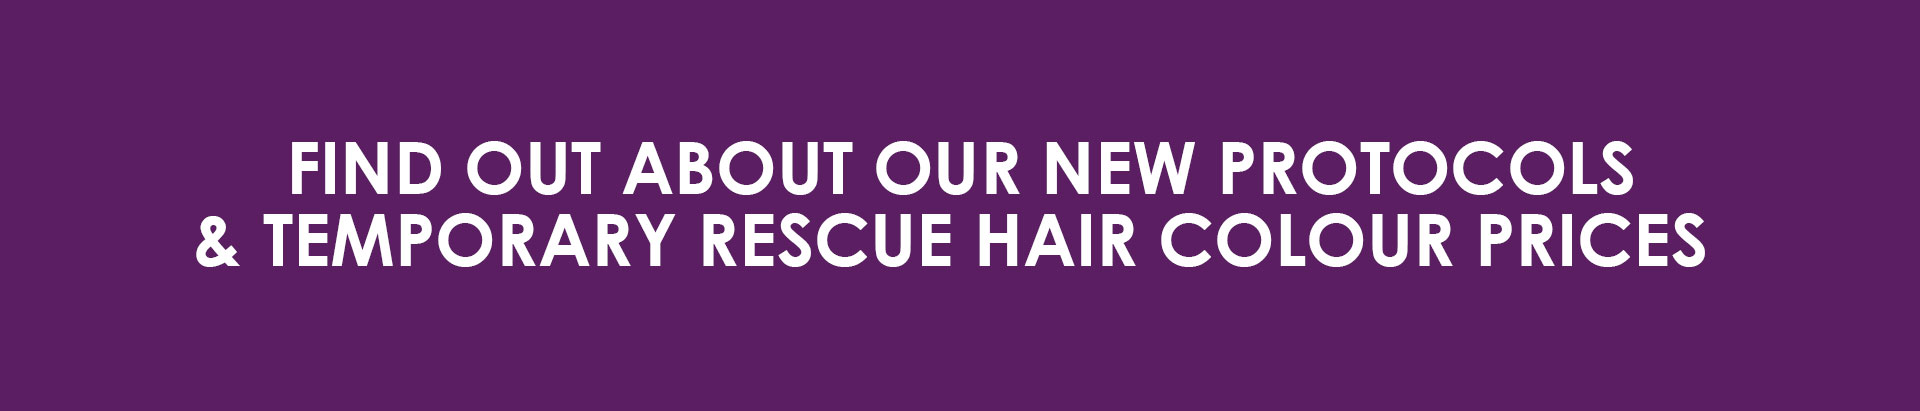 FIND OUT ABOUT OUR NEW PROTOCOLS TEMPORARY RESCUE HAIR COLOUR PRICES